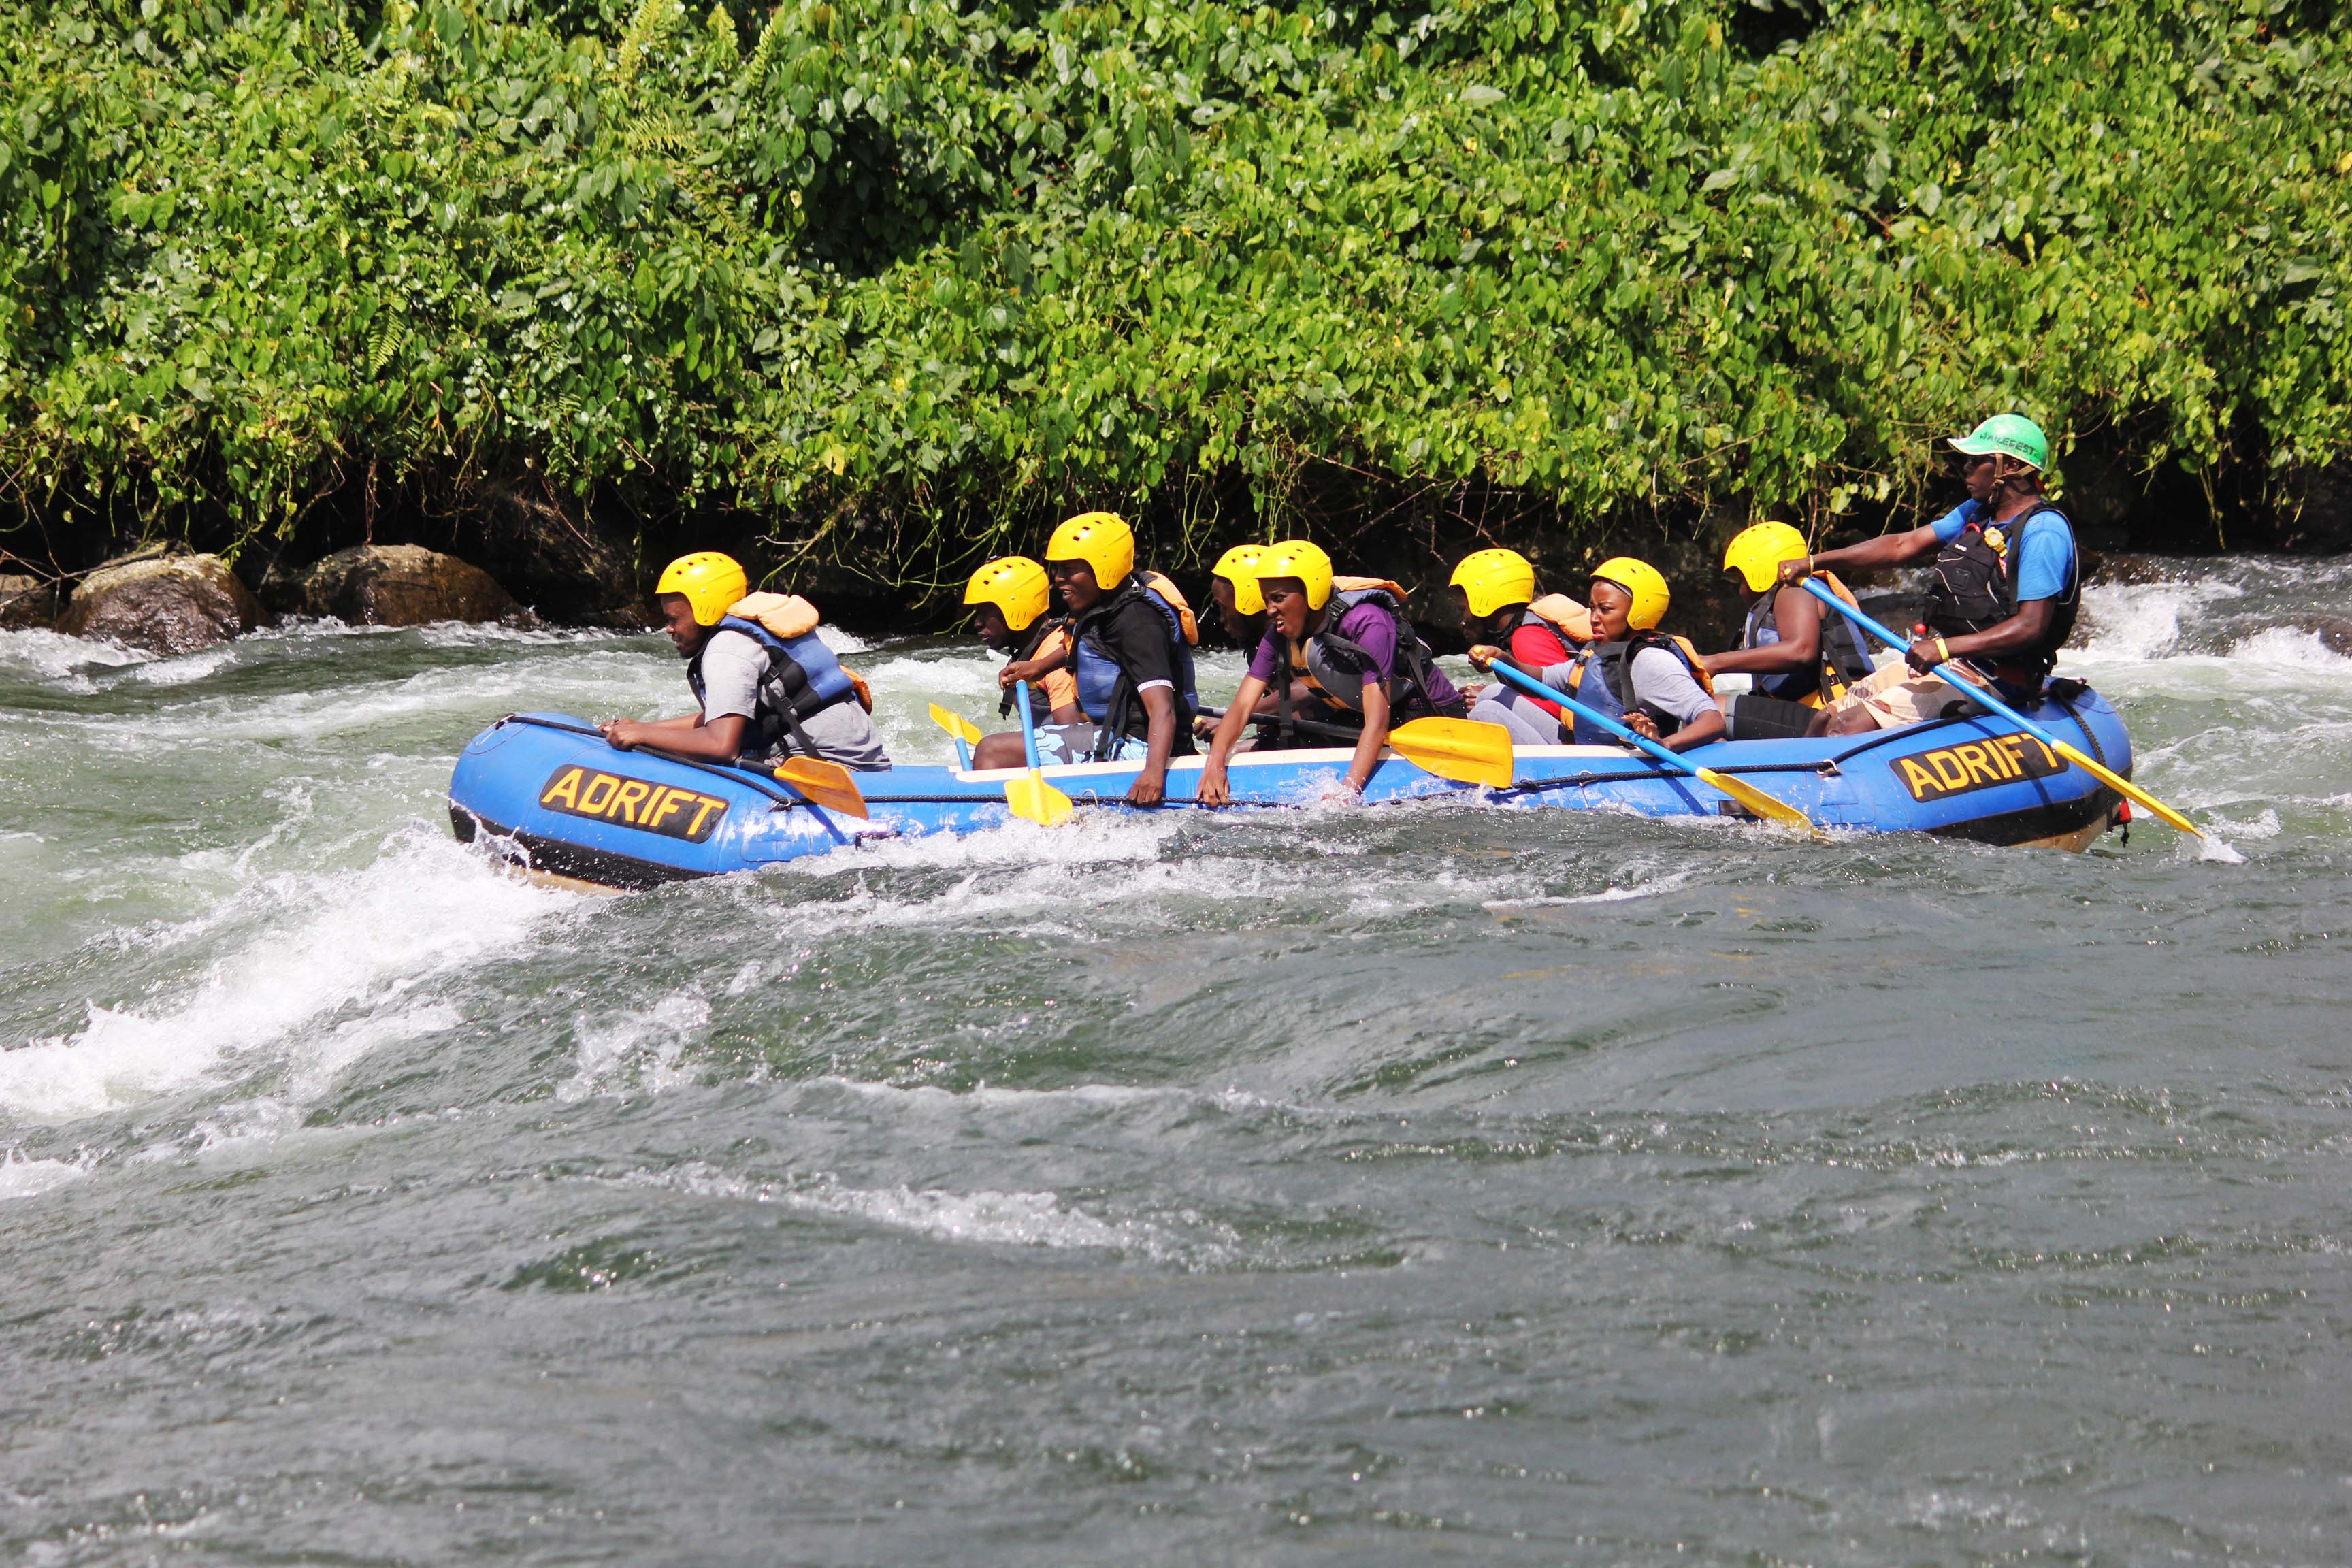 Days wildlife Adventure gorilla tracking rafting hiking